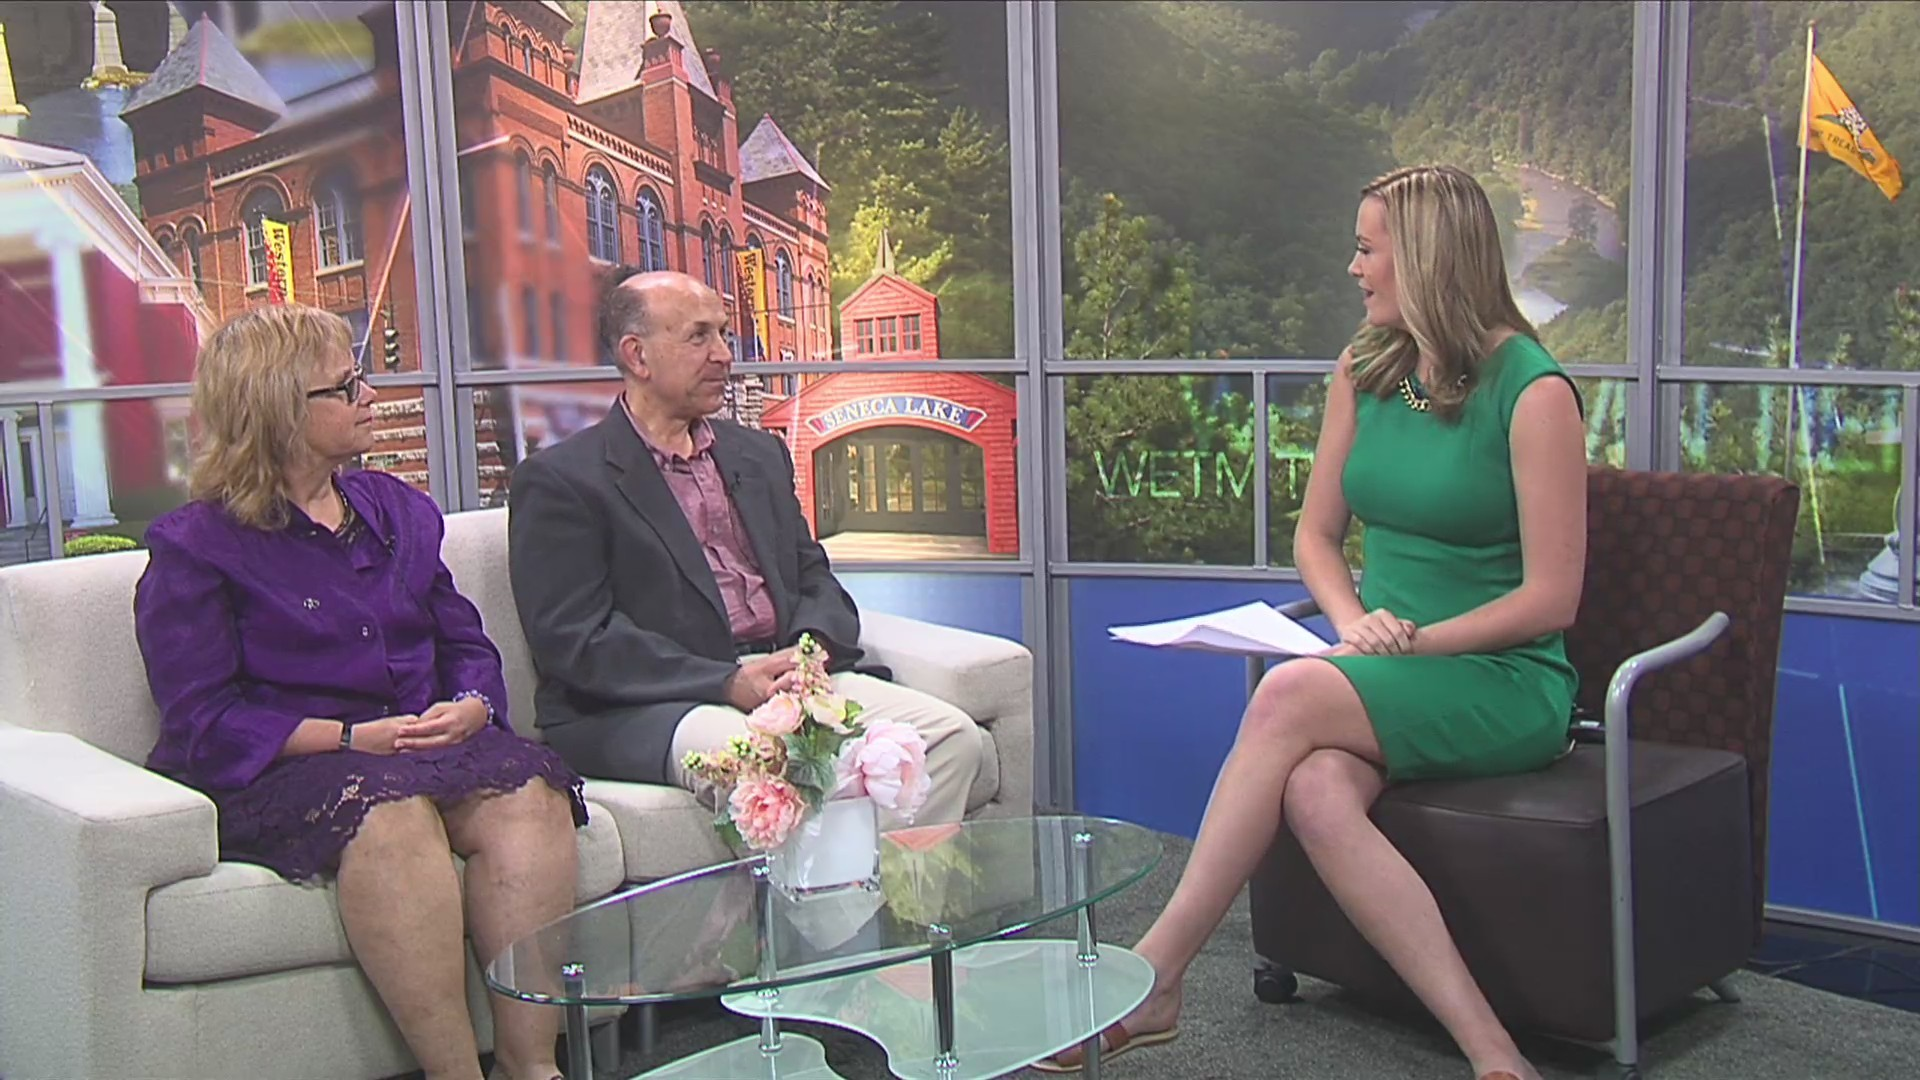 Local singing group working to erase stigma surrounding dementia with unique concert